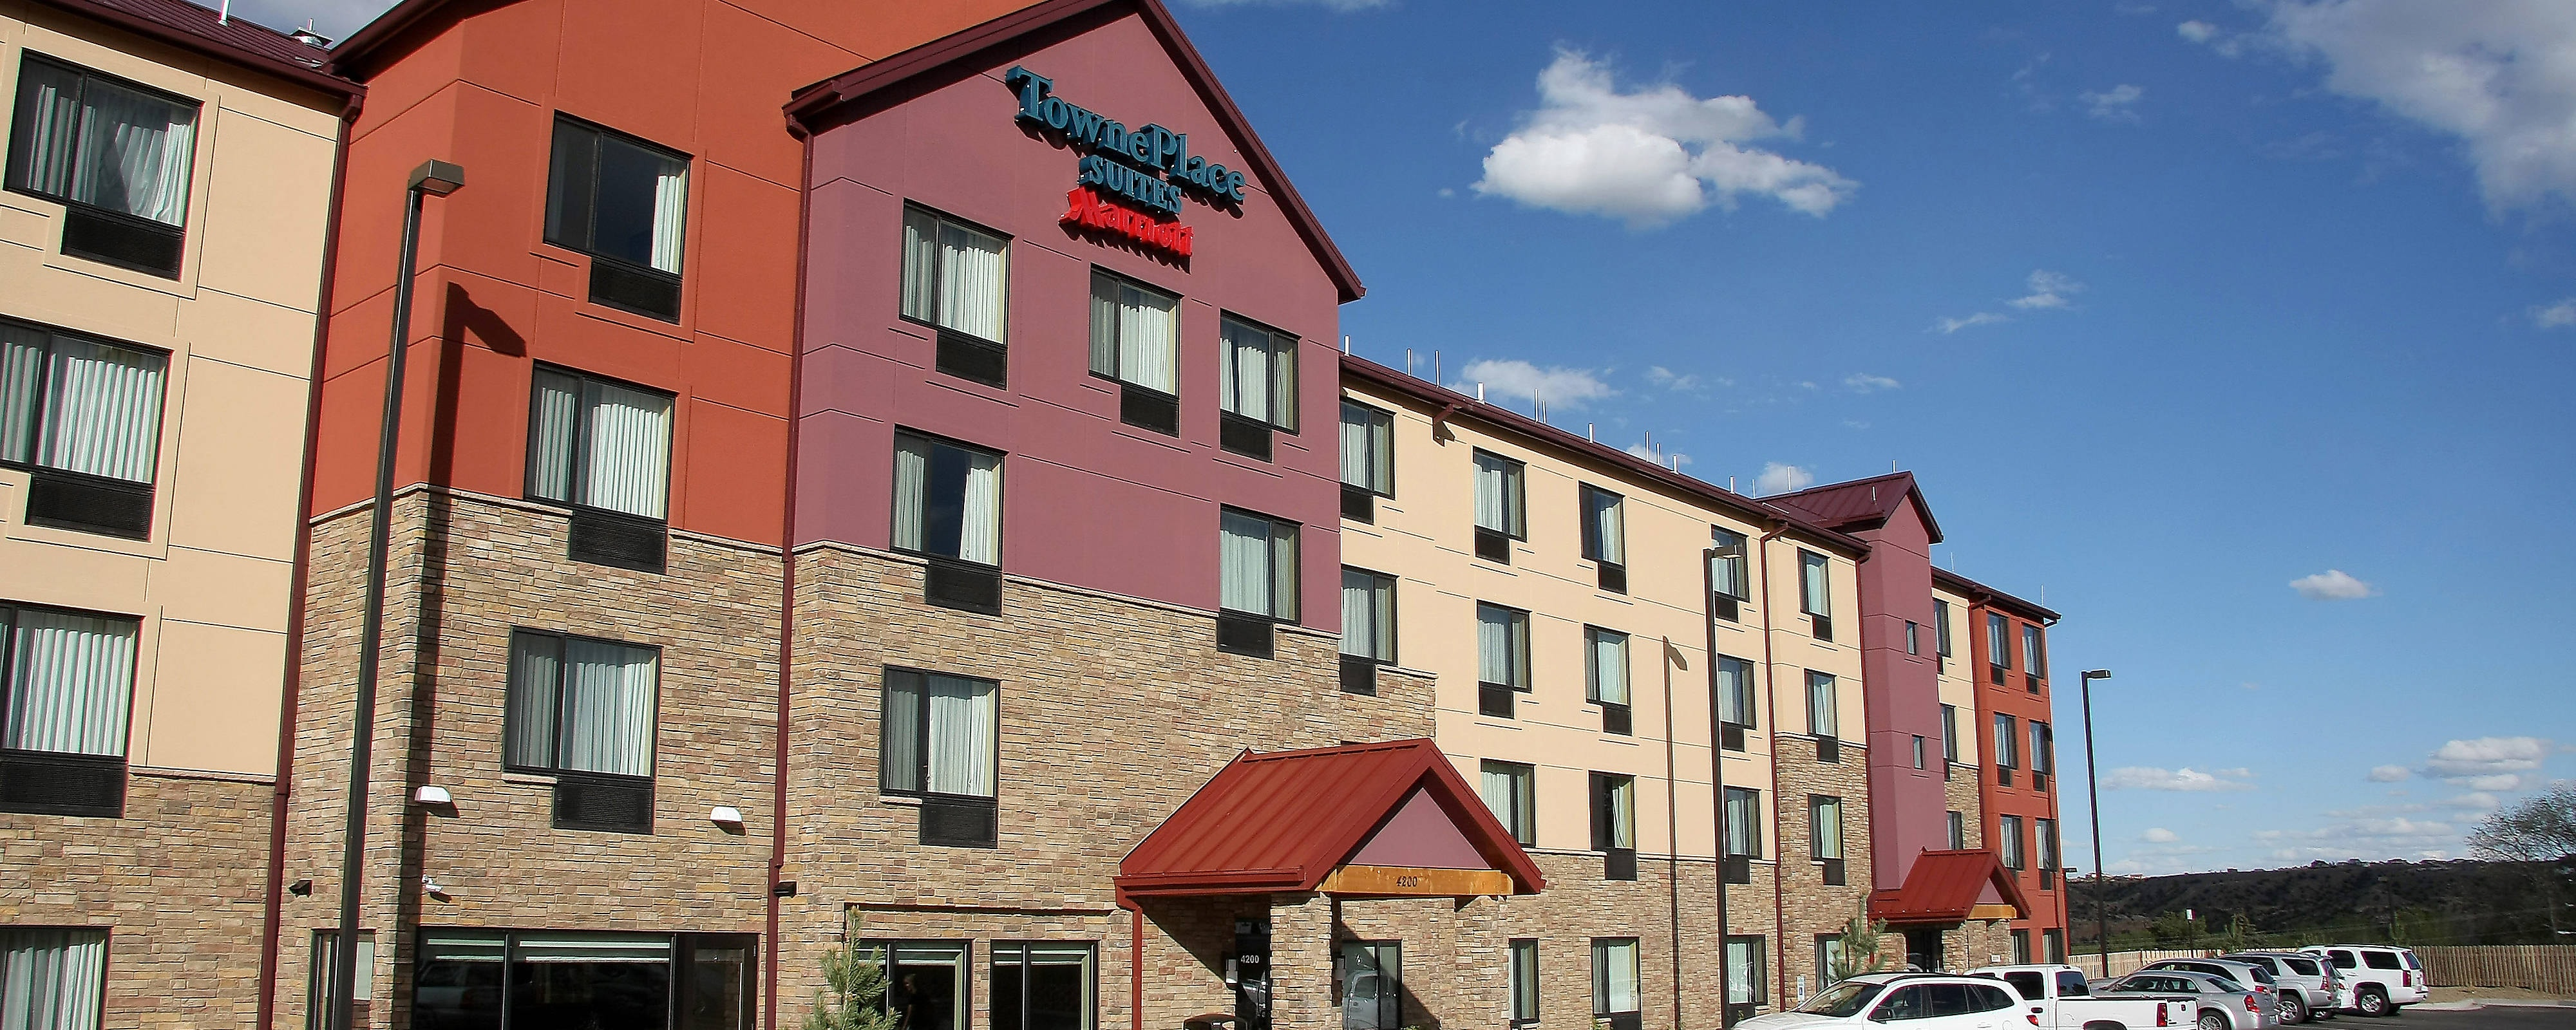 Farmington TownePlace All-Suite Hotel